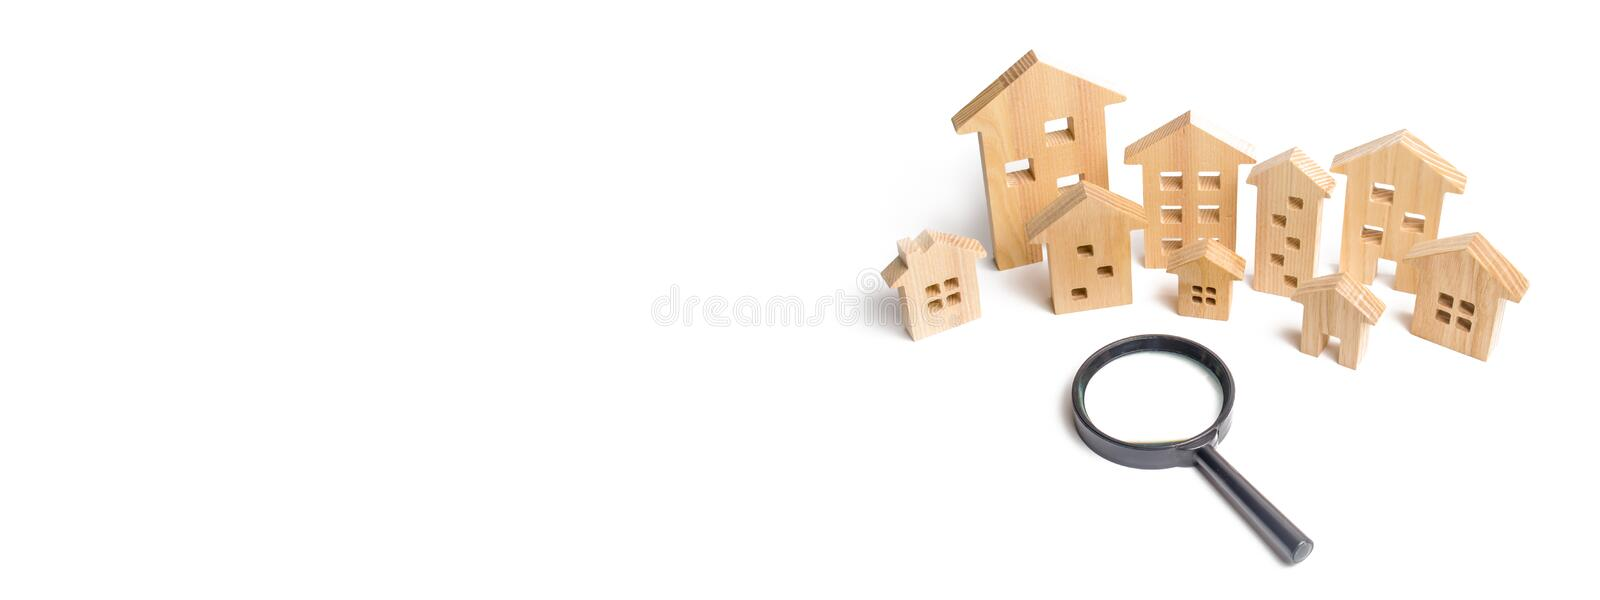 City of wooden houses on a white background. The concept of urban planning, infrastructure projects. Buying and selling real. Estate, building new buildings stock photo